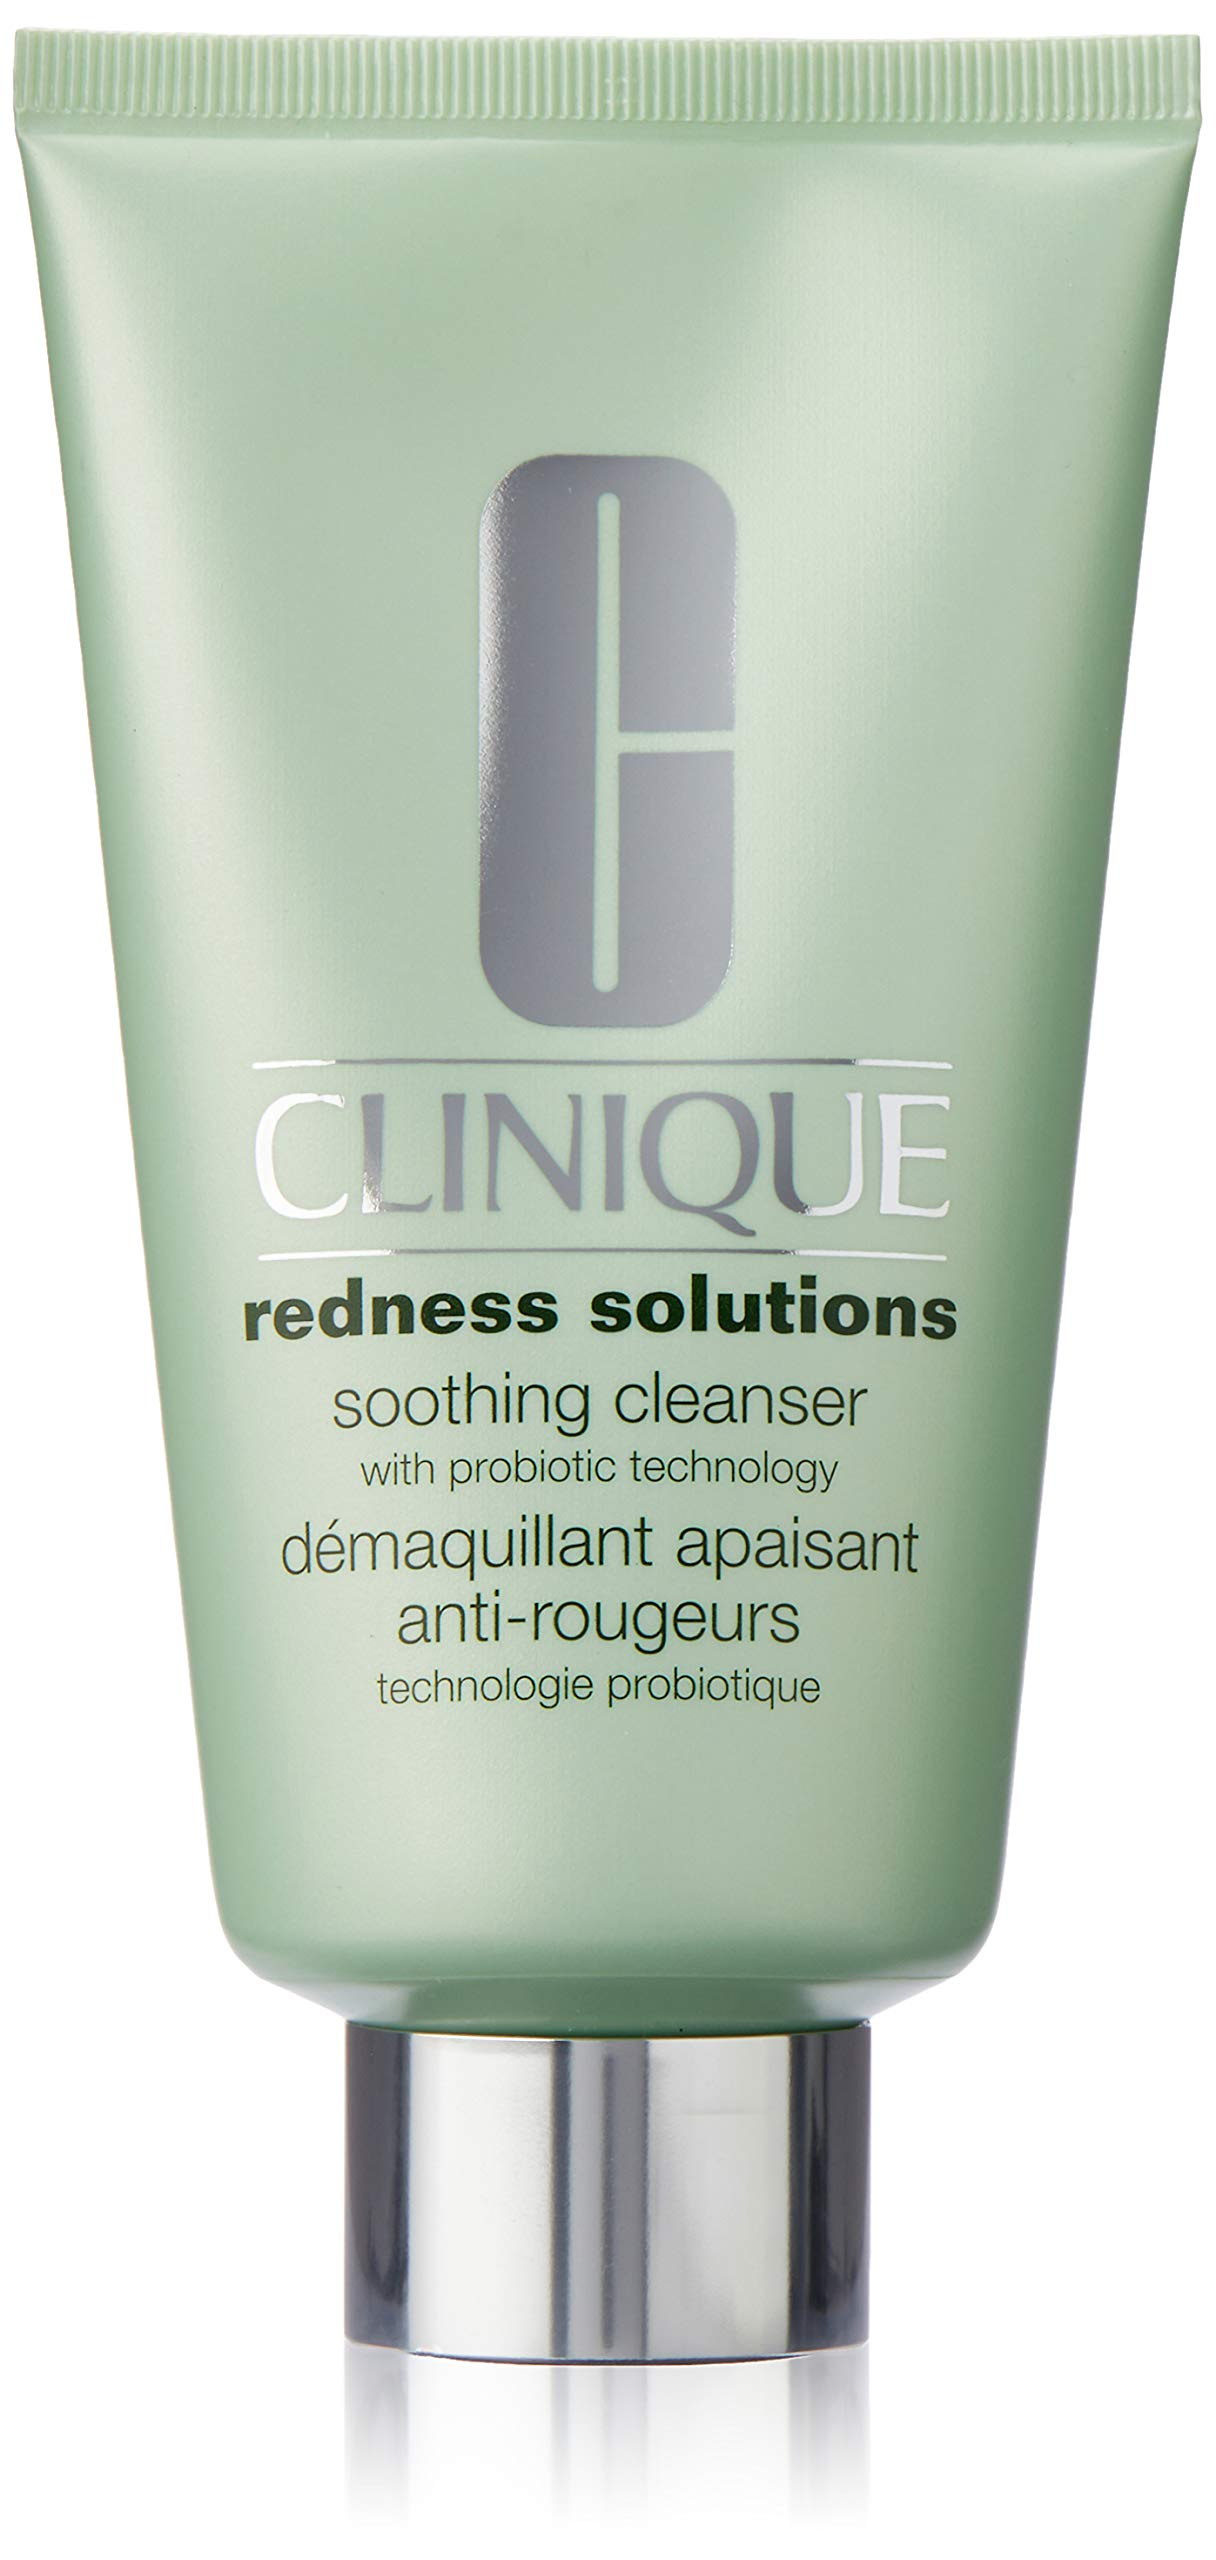 Clinique Redness Solutions Soothing Cleanser for Unisex, 5 Ounce by Clinique